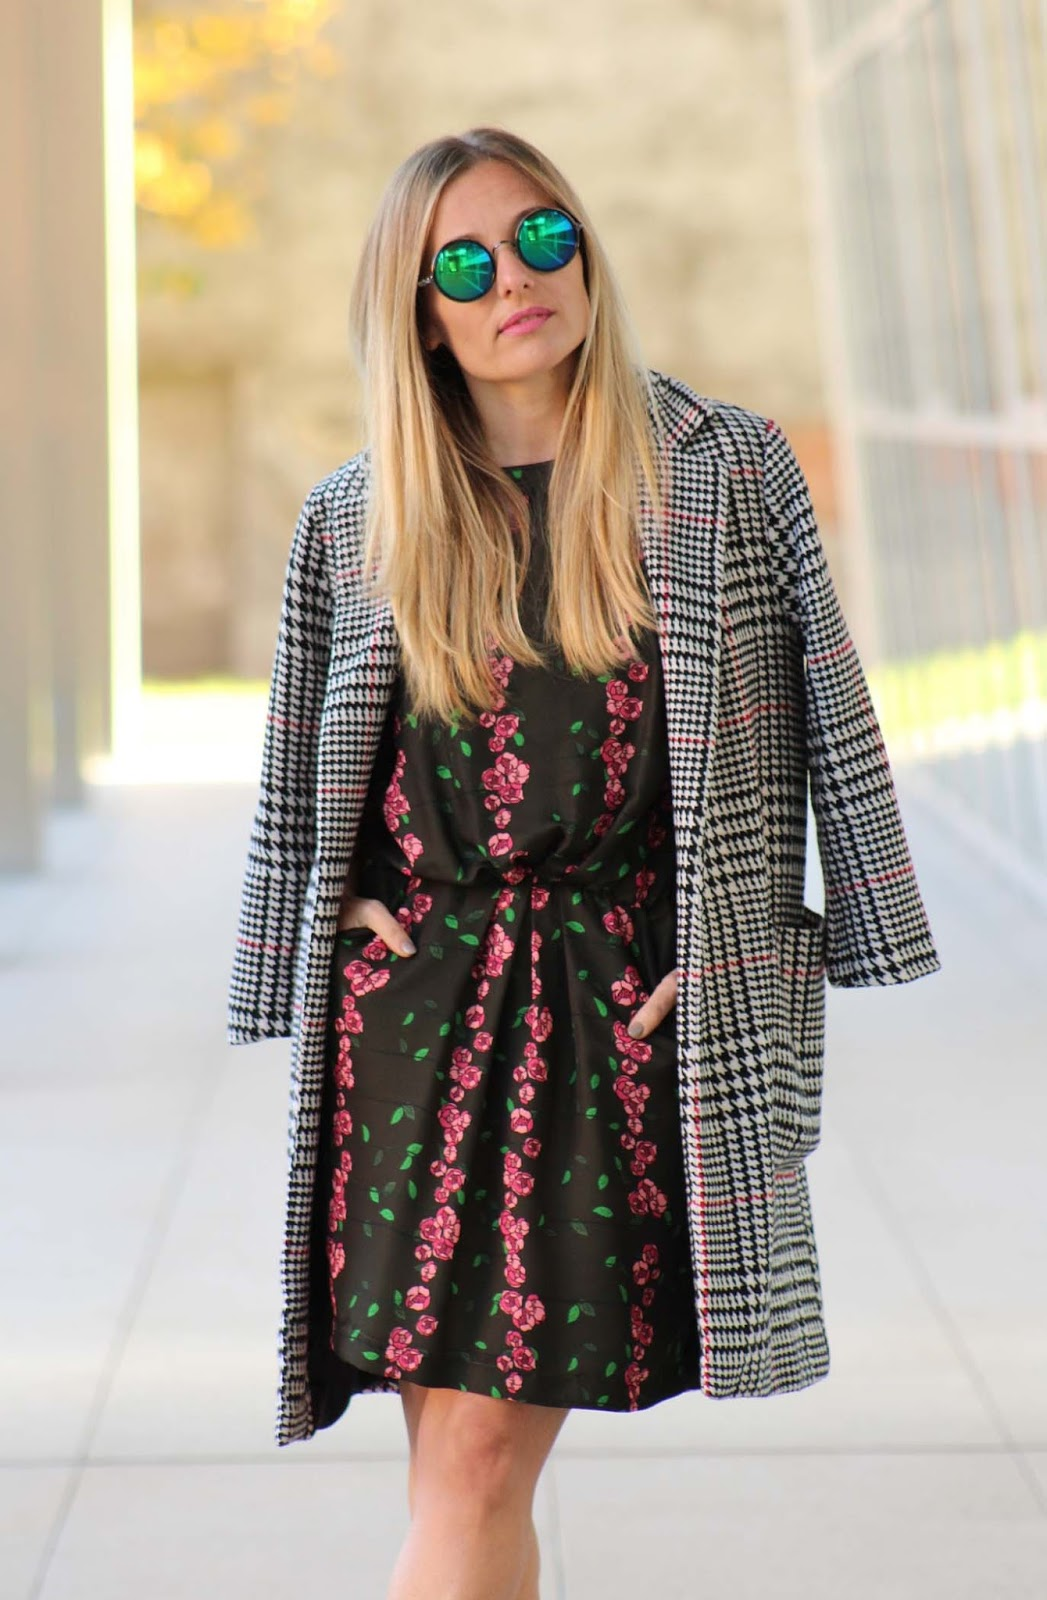 Eniwhere Fashion - Zaful's coat and Coto Privado dress